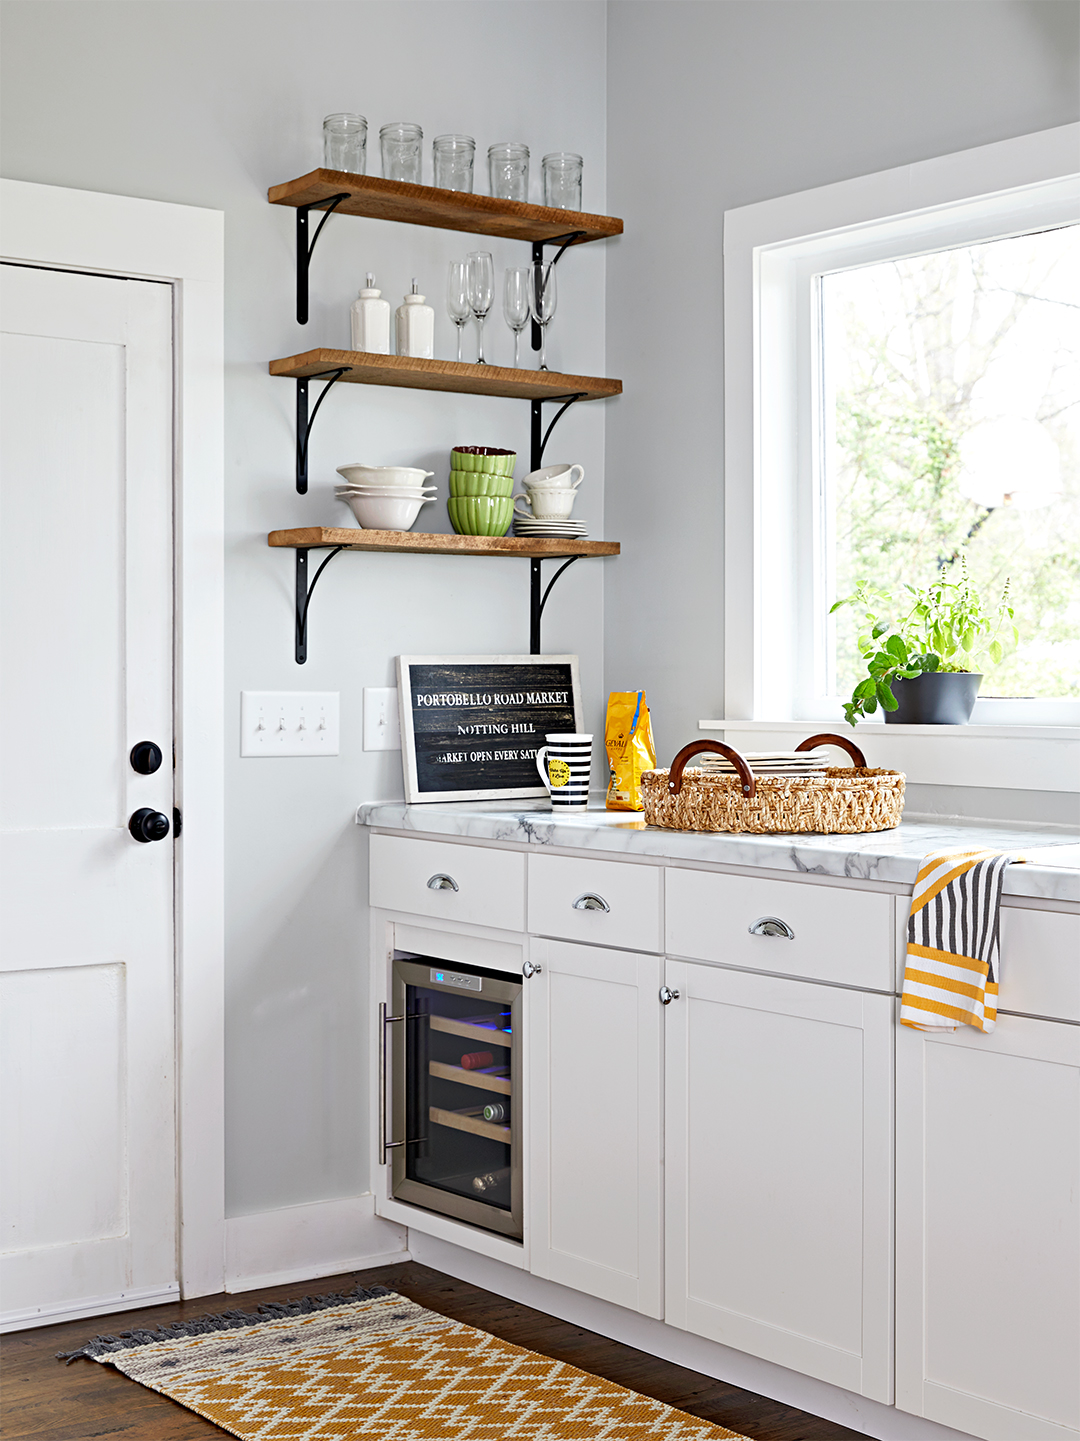 repurposed wood shelves for simple storage in grey kitchen